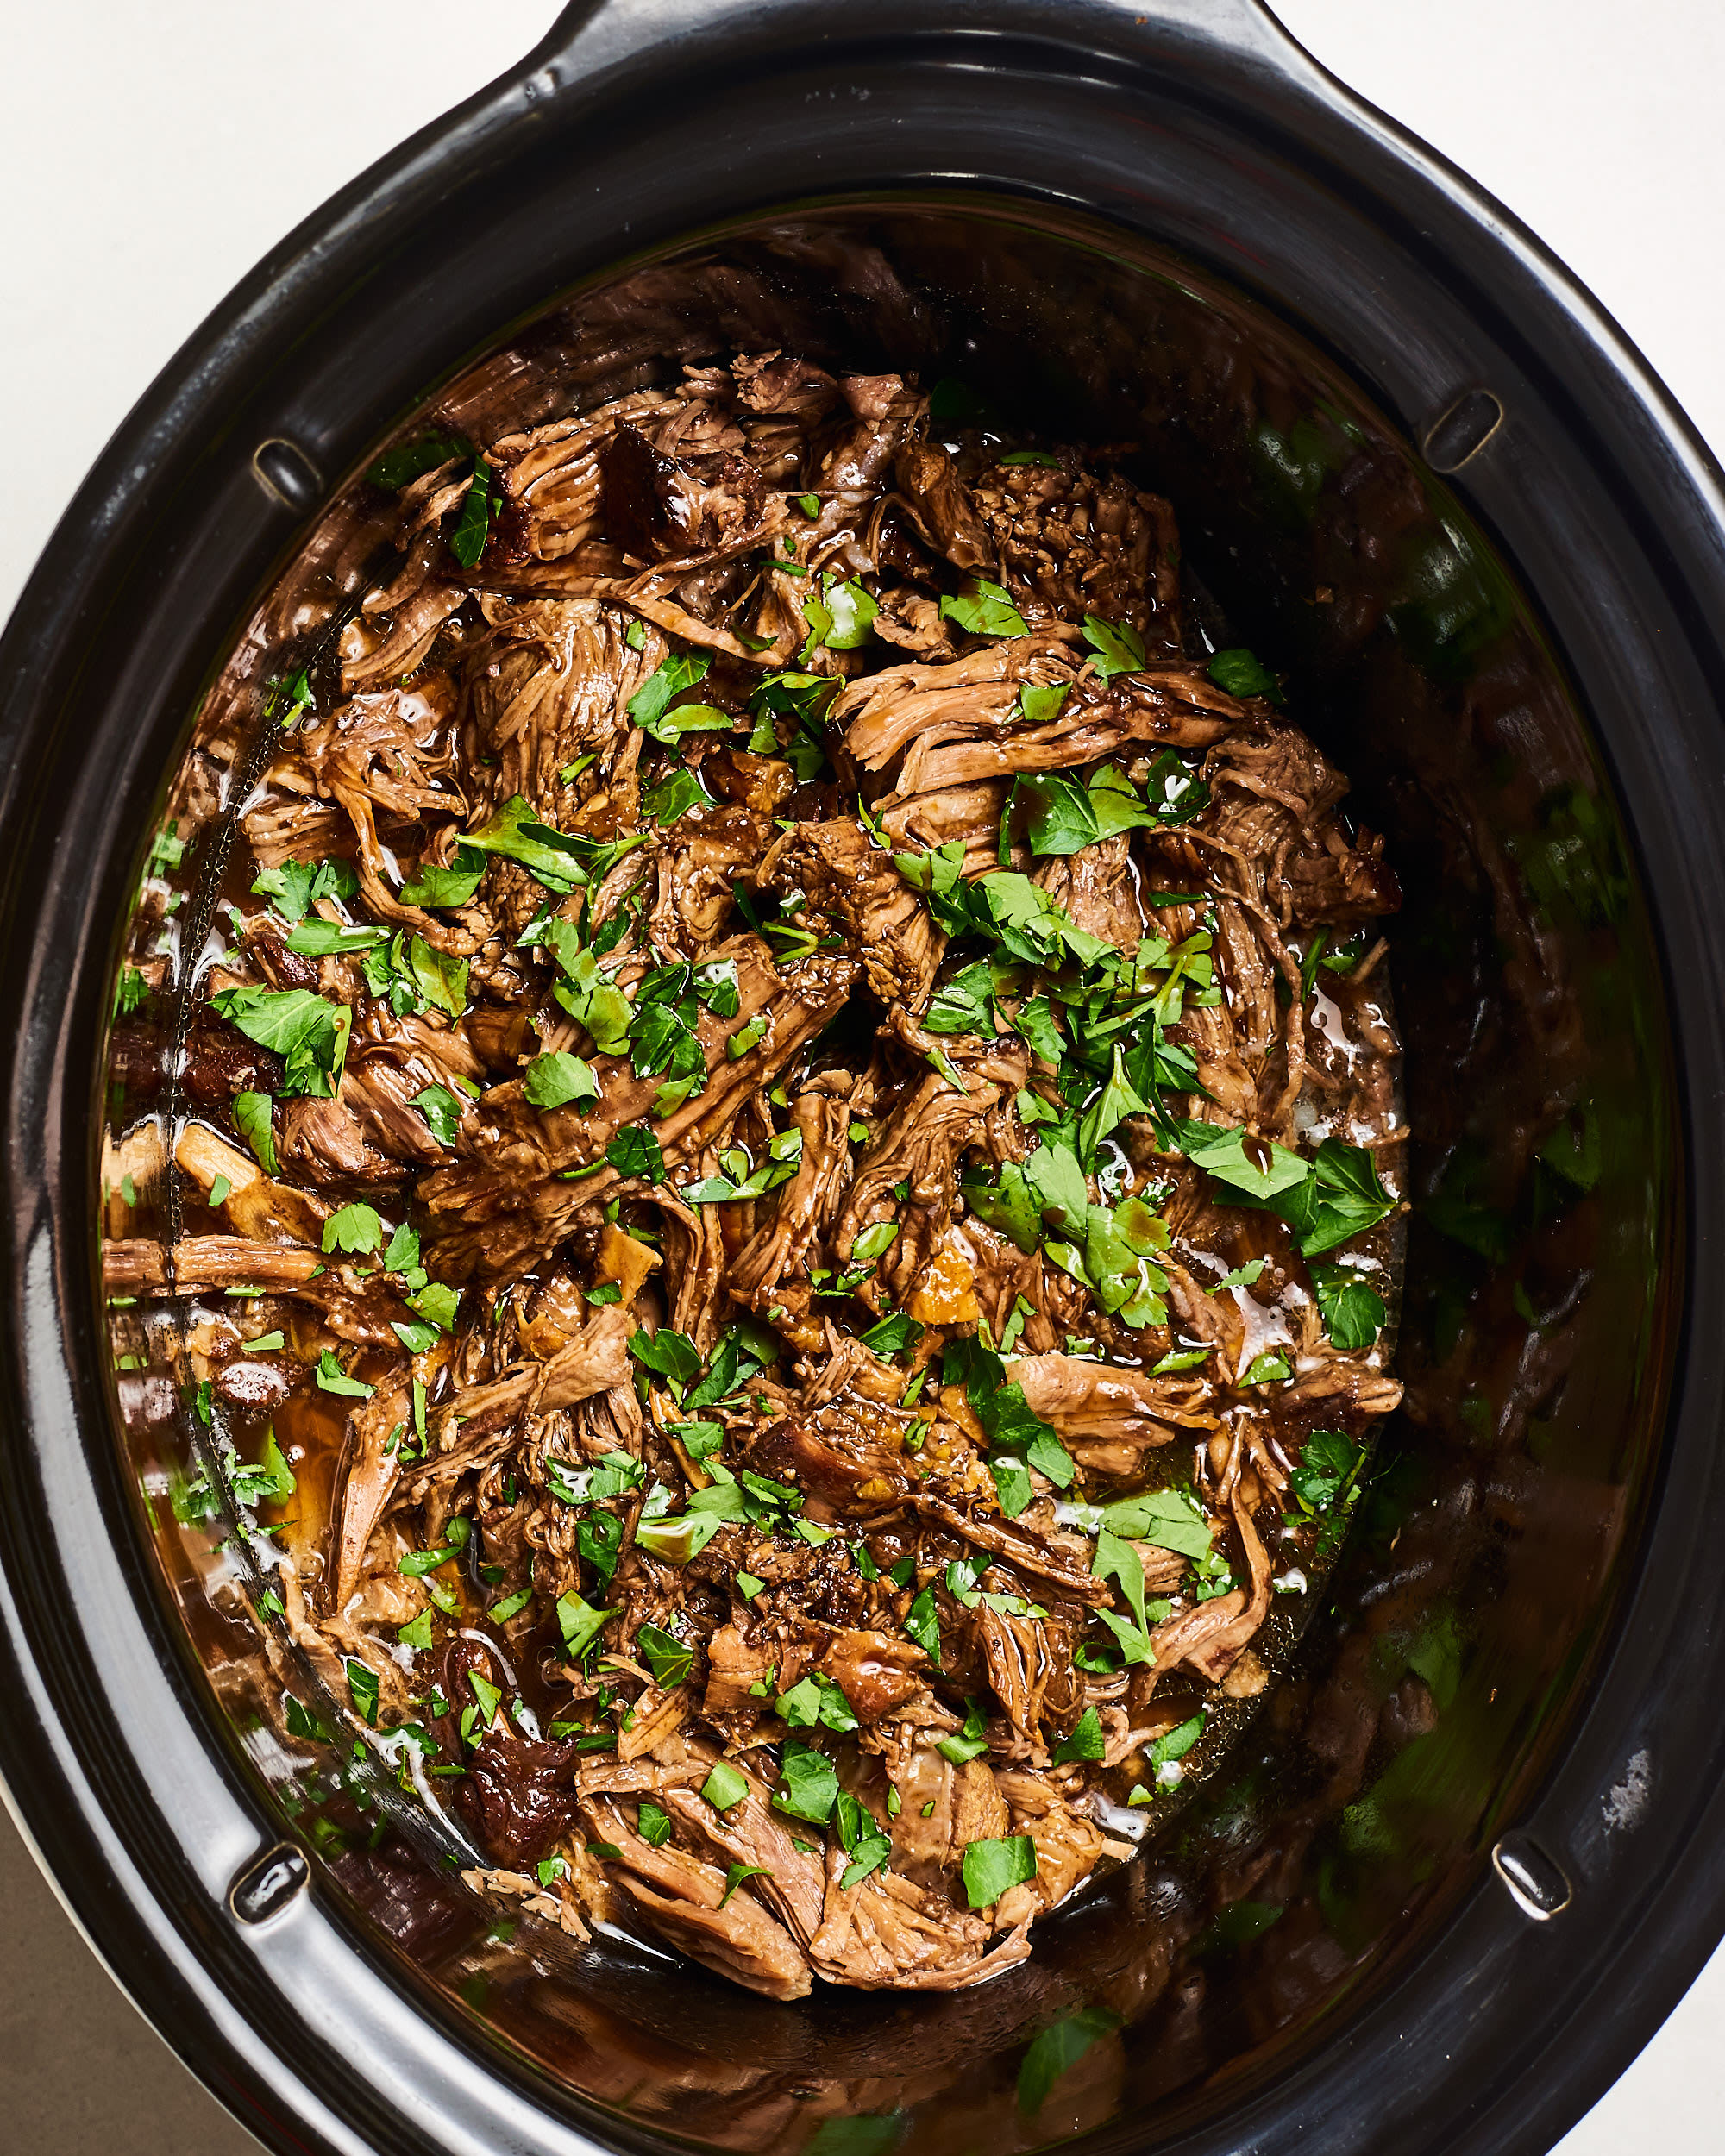 Recipe: Slow Cooker Shredded Balsamic Beef